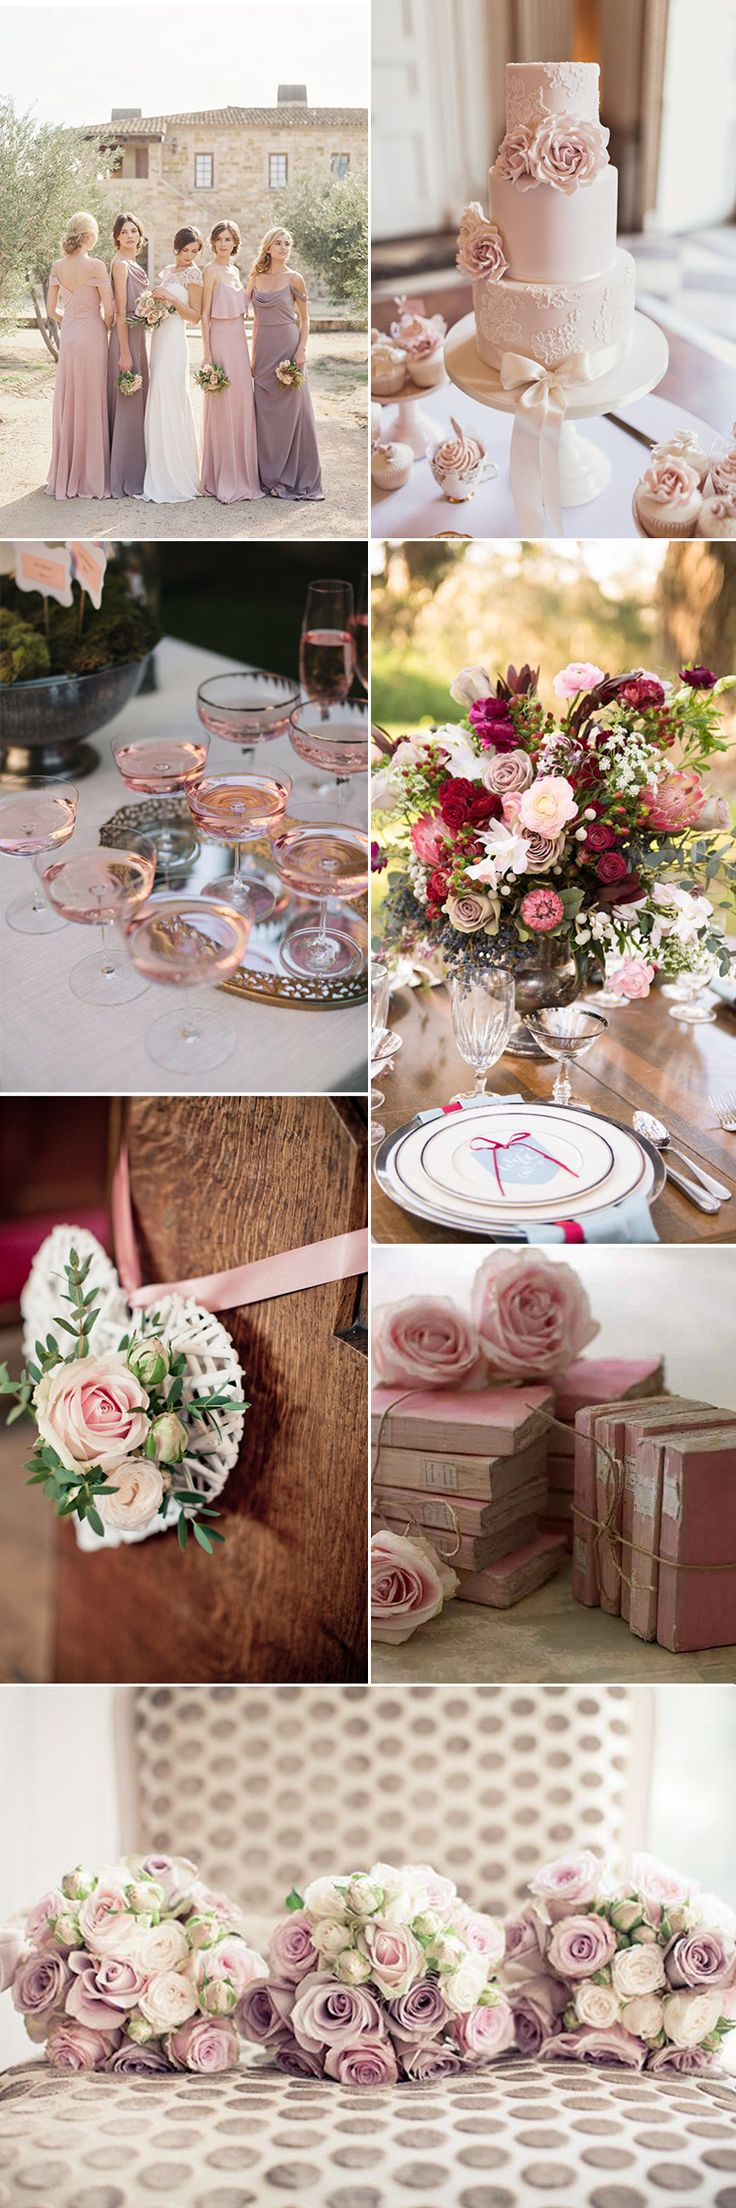 Roses are always an incredibly popular flower for weddings and with good reason. They're delicate, beautiful and always seem special.They come in so many colors and shades but it's the antique rose with its dusky charms and vintage vibe is the perfect choice for your whole wedding theme...